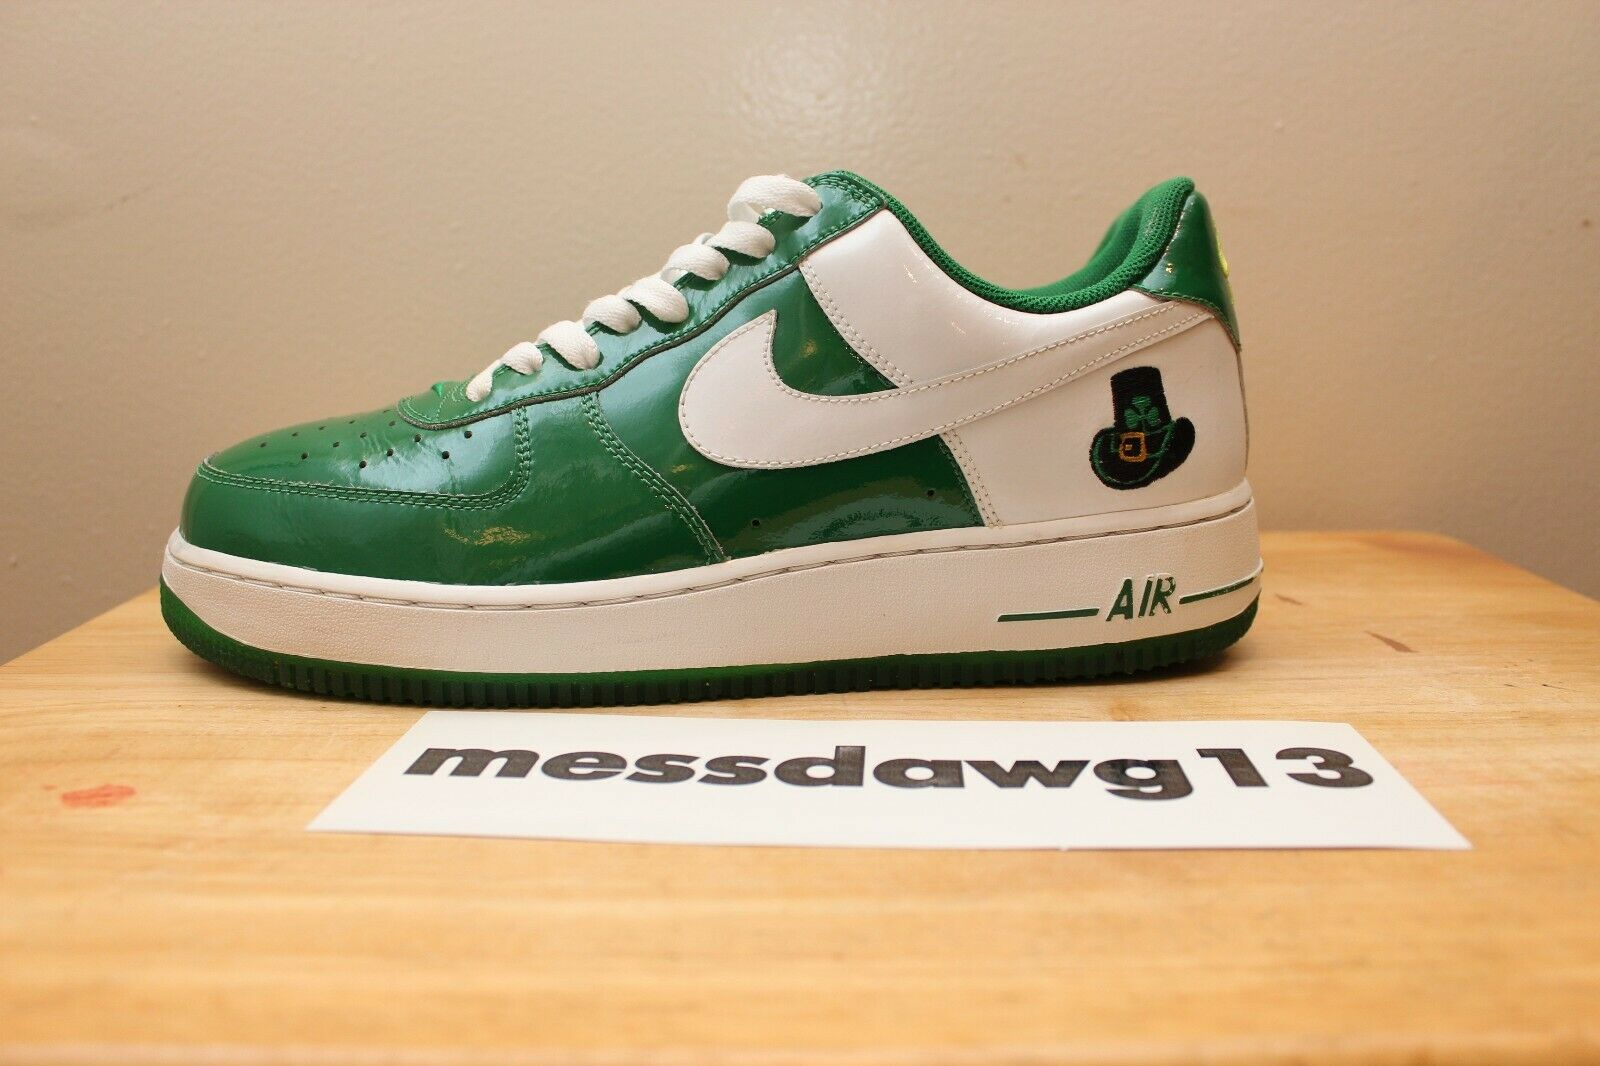 Nike Air Force 1 (AF1) Low Premium  ST. Patrick's Day  size 10.5 - 2006